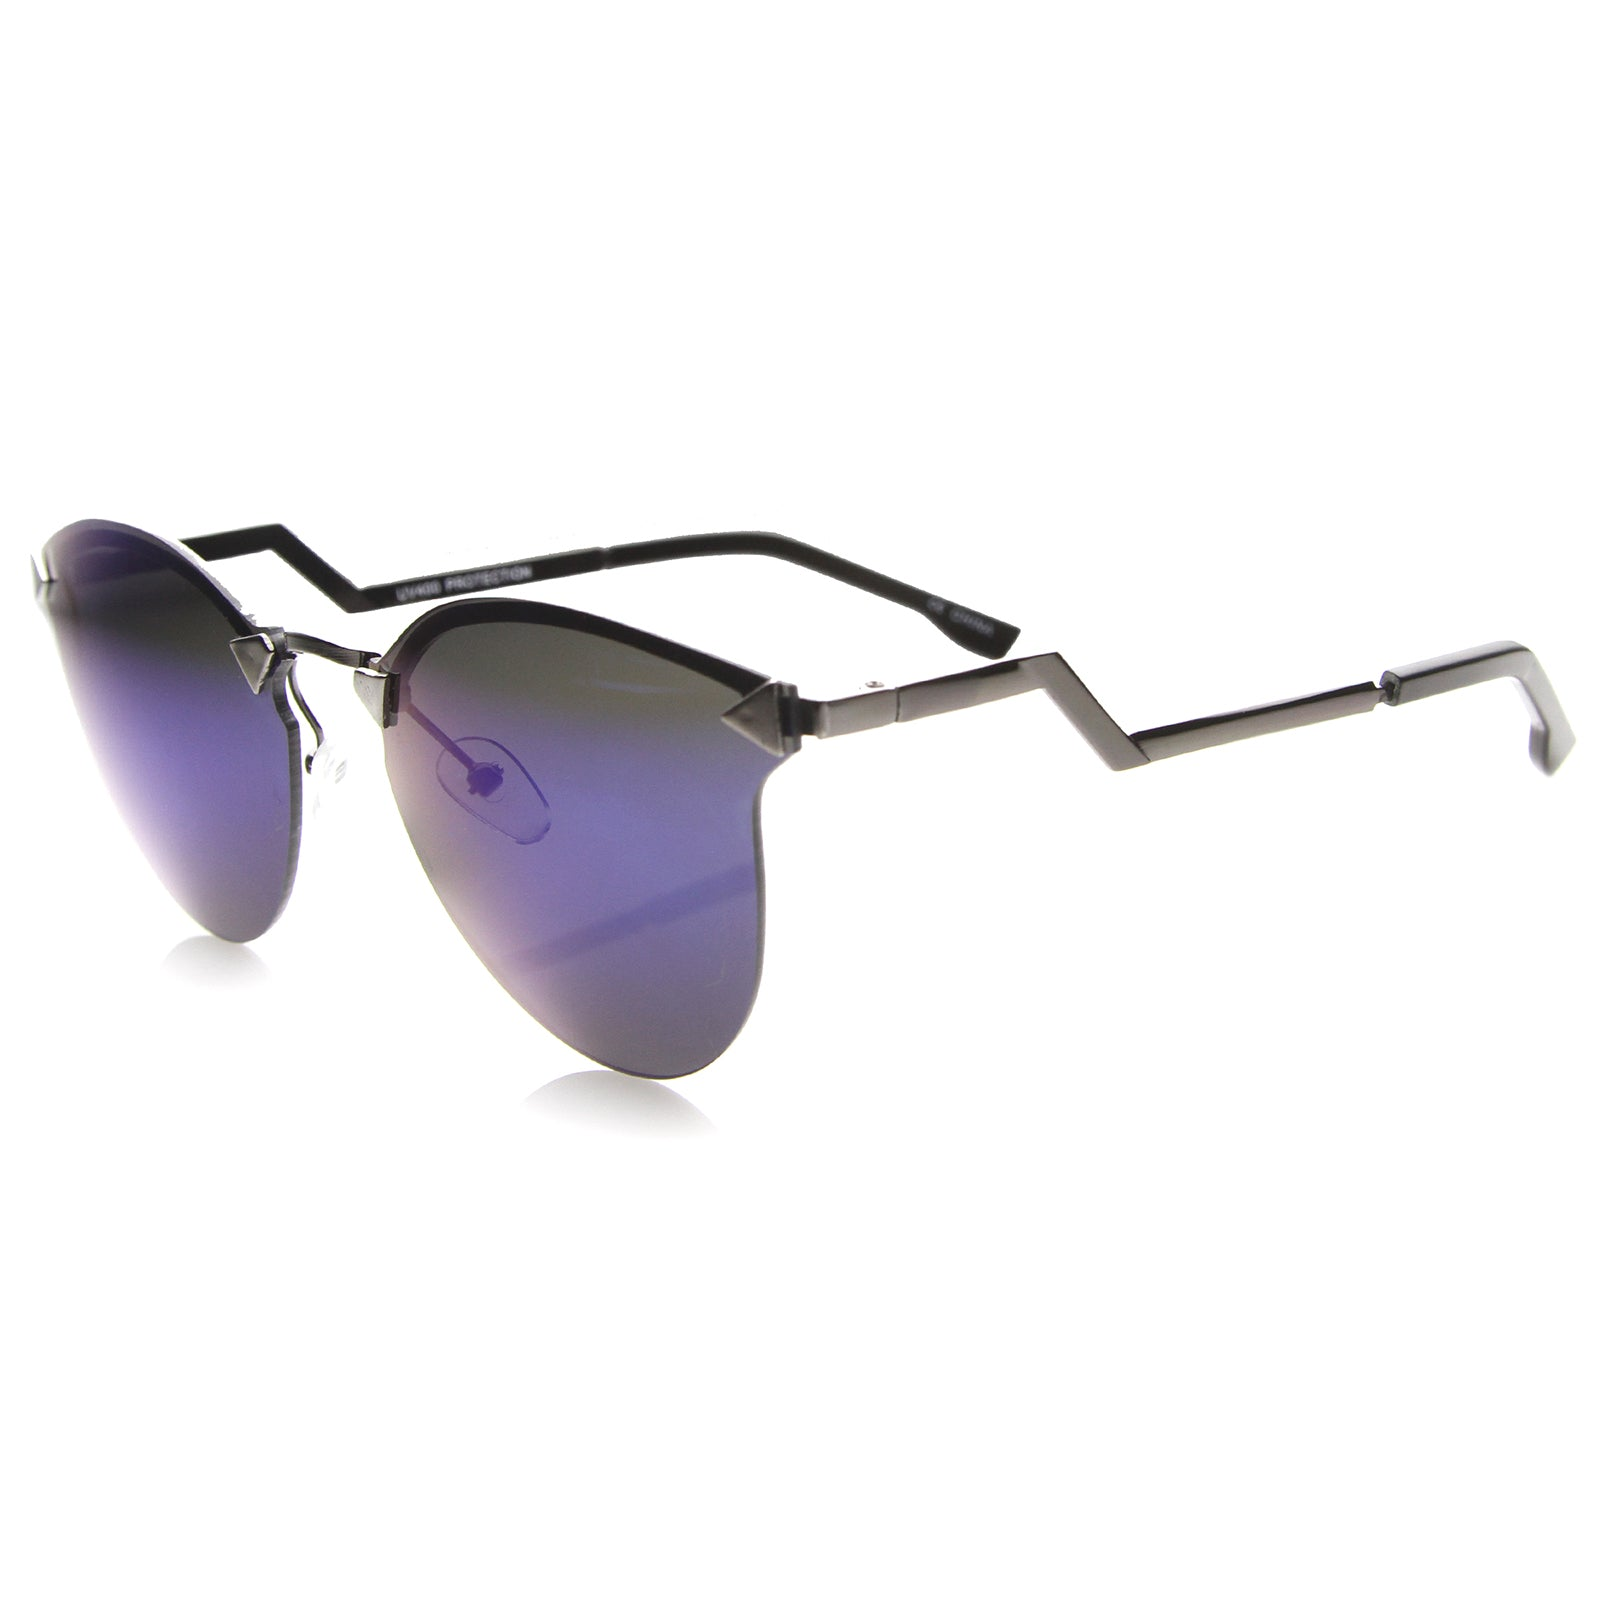 Mens Metal Aviator Sunglasses With UV400 Protected Mirrored Lens - sunglass.la - 3